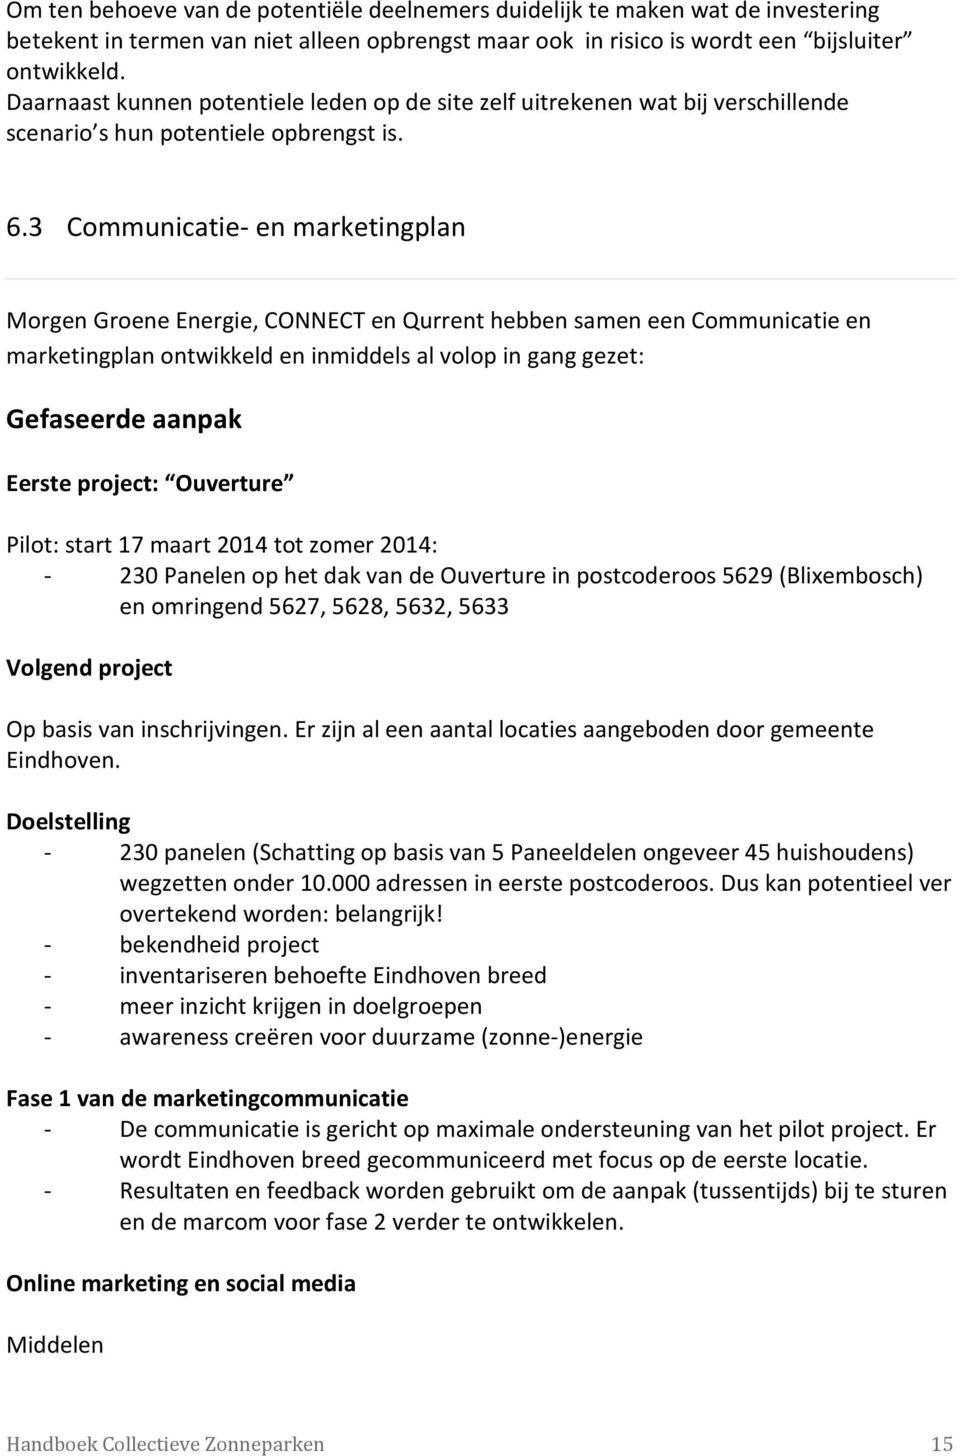 3 Communicatie- en marketingplan Morgen Groene Energie, CONNECT en Qurrent hebben samen een Communicatie en marketingplan ontwikkeld en inmiddels al volop in gang gezet: Gefaseerde aanpak Eerste